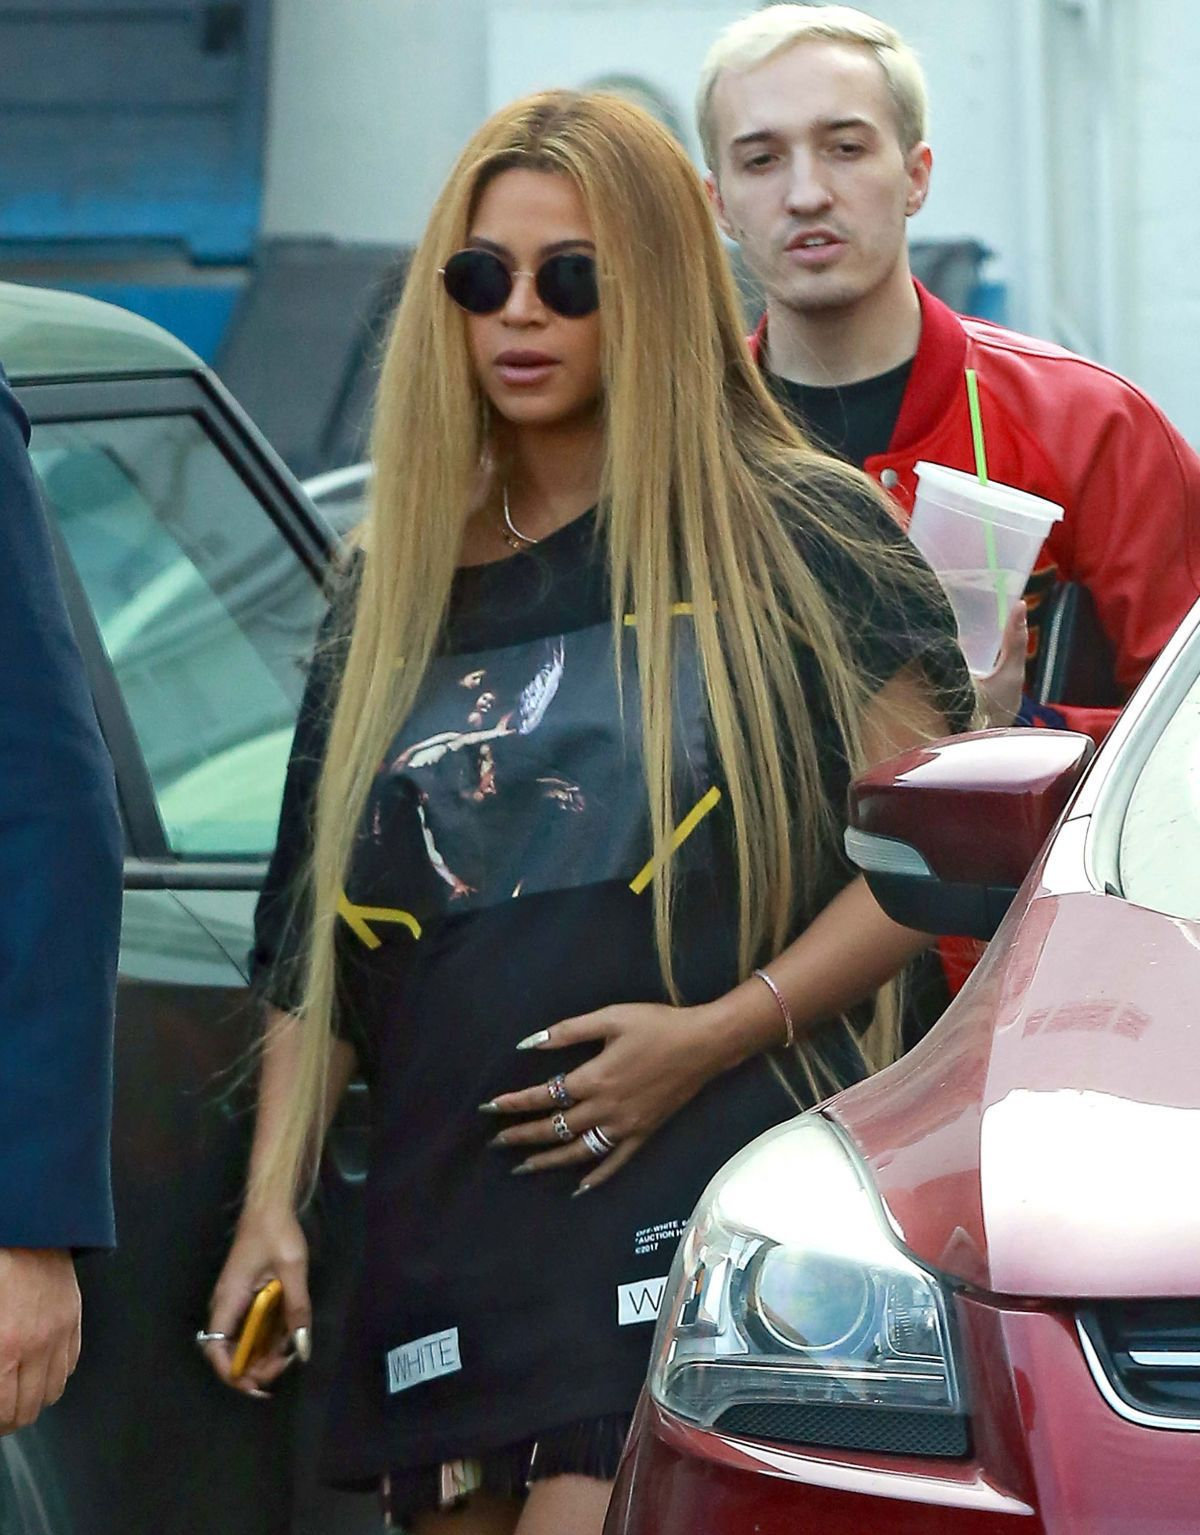 Pregnant Beyoncé Stills Out and About in Beverly Hills  Read more: http://www.celebskart.com/pregnant-beyonce-stills-beverly-hills/#ixzz4Z7Vy0v5v